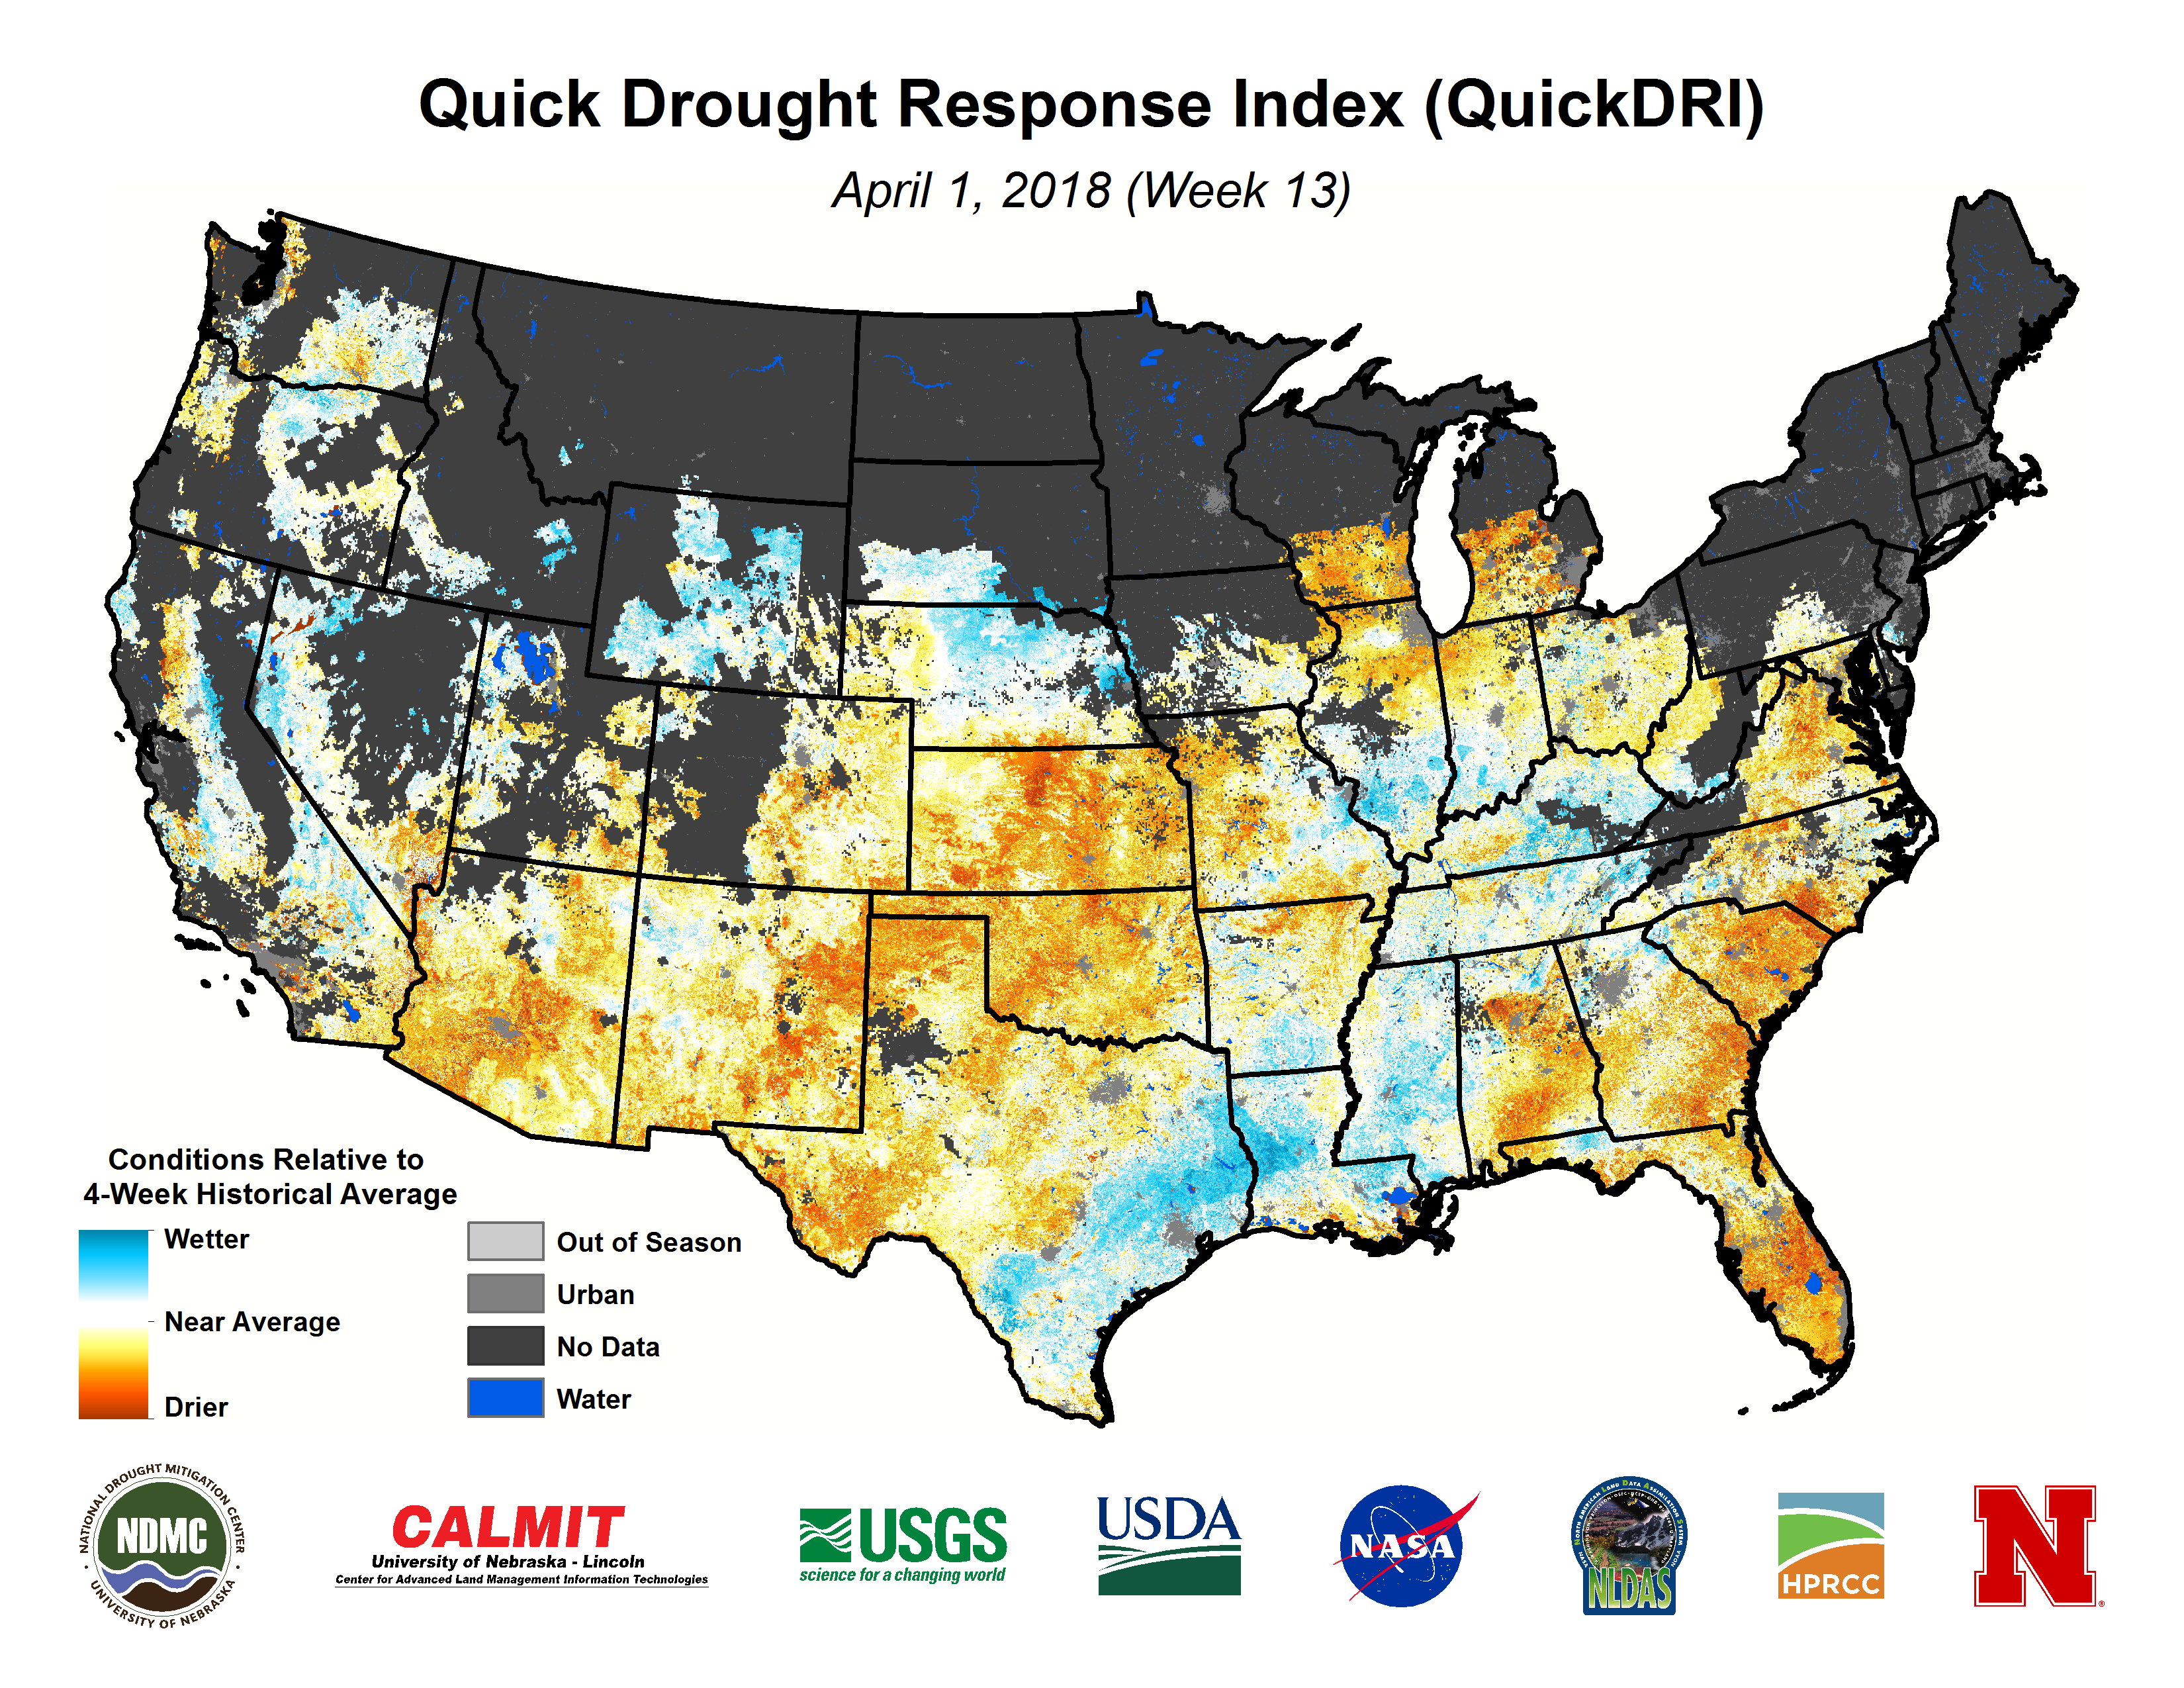 groundwater usgs observations nasa grace model streamflow soil moisture smos satellite observations and cpc leaky bucket vic nasa grace